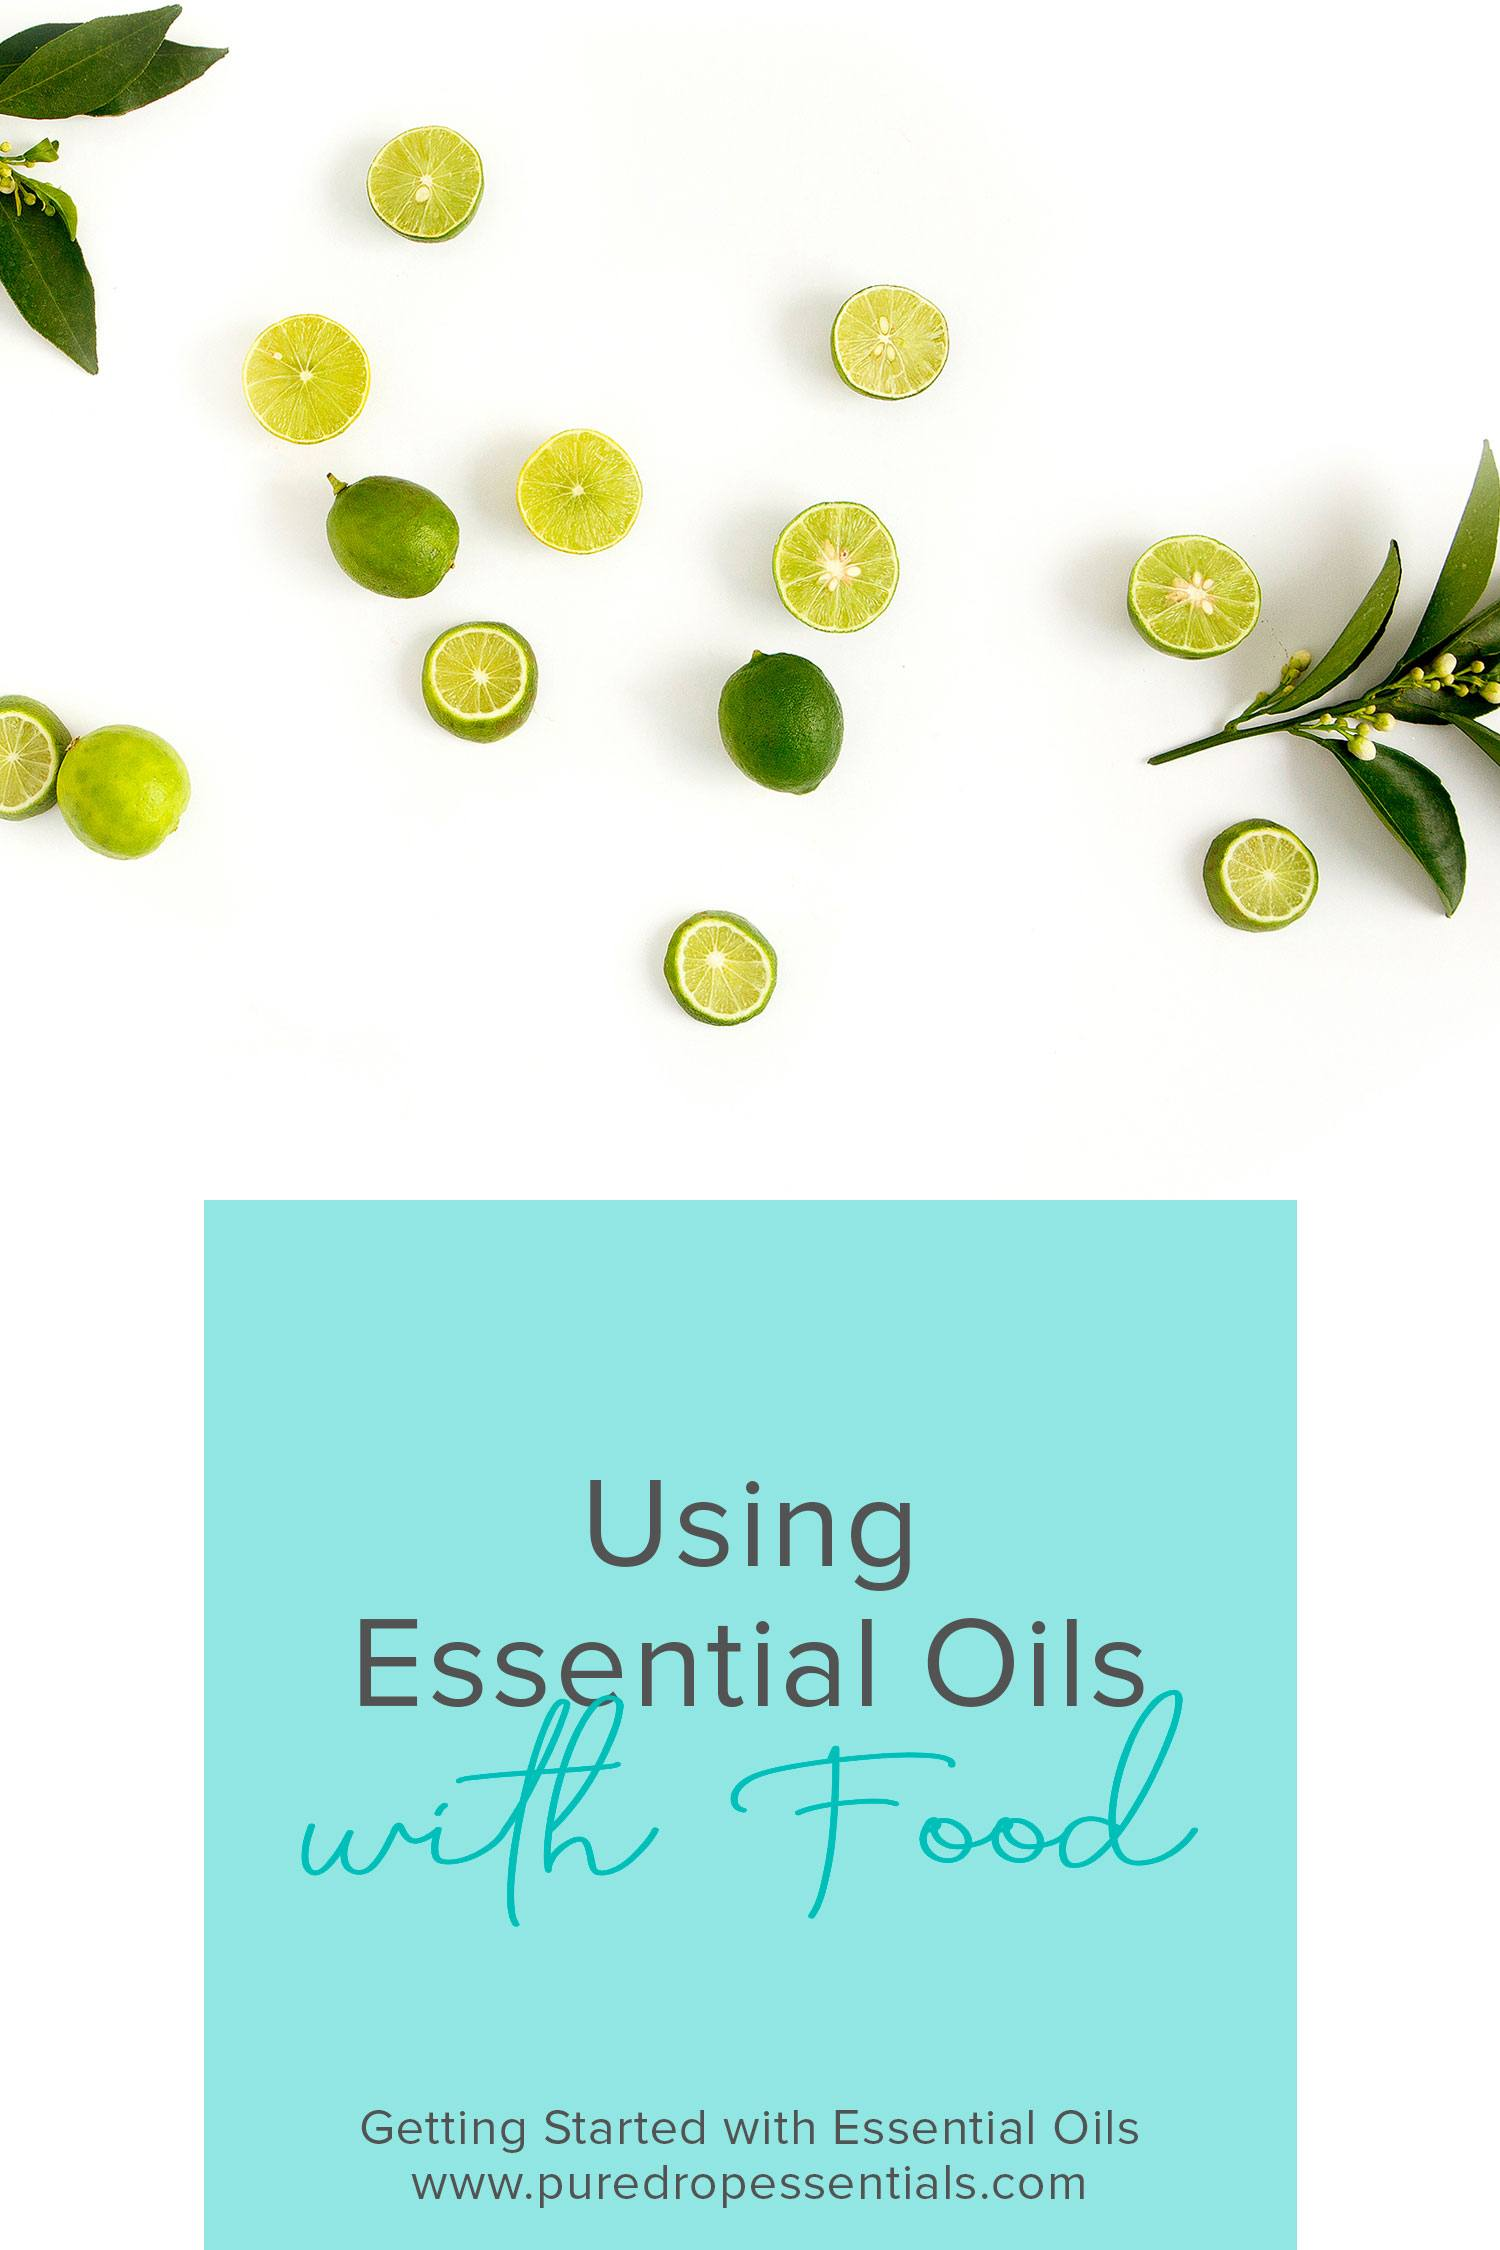 Did you know you can use some essential oils for flavouring your food? May foods you buy are already making use of essential oils for flavouring. Think peppermint tea, which gets its flavour from peppermint essential oil. There's no reason we can't use essential oils ourselves to flavour our food at home. Click through to find out more about using essential oils topically to support your body ! www.puredropessentials.com